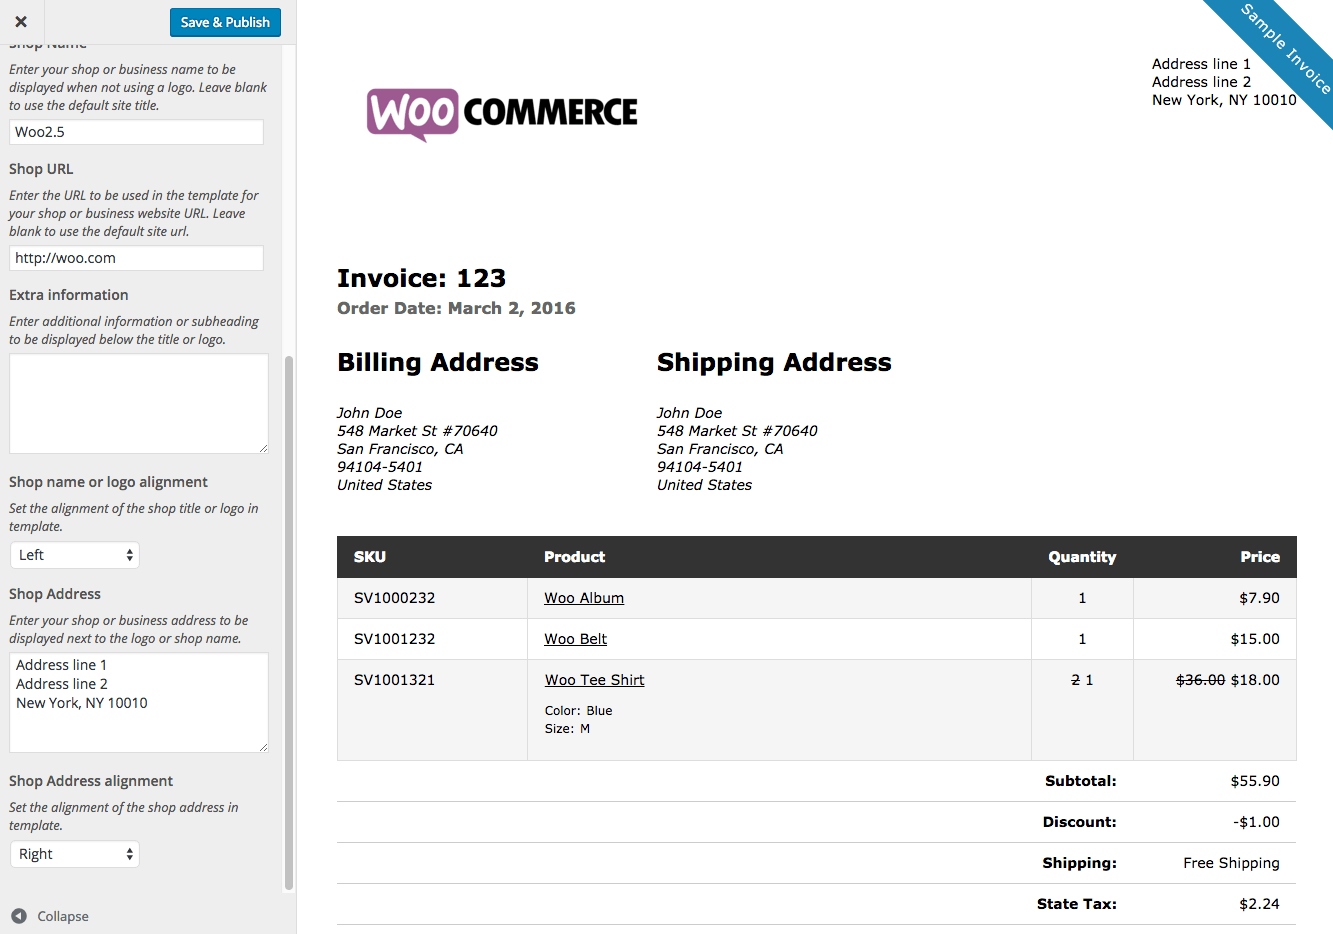 Darkfaderus  Terrific Woocommerce Print Invoices Amp Packing Lists  Woocommerce Docs With Hot Woocommerce Print Invoices  Packing Lists Customizer With Delightful Invoice Price For Car Also Microsoft Word Invoice Template Mac In Addition Invoice For Payment Template And Simple Service Invoice As Well As How Do You Create An Invoice Additionally Best Small Business Invoicing Software From Docswoocommercecom With Darkfaderus  Hot Woocommerce Print Invoices Amp Packing Lists  Woocommerce Docs With Delightful Woocommerce Print Invoices  Packing Lists Customizer And Terrific Invoice Price For Car Also Microsoft Word Invoice Template Mac In Addition Invoice For Payment Template From Docswoocommercecom